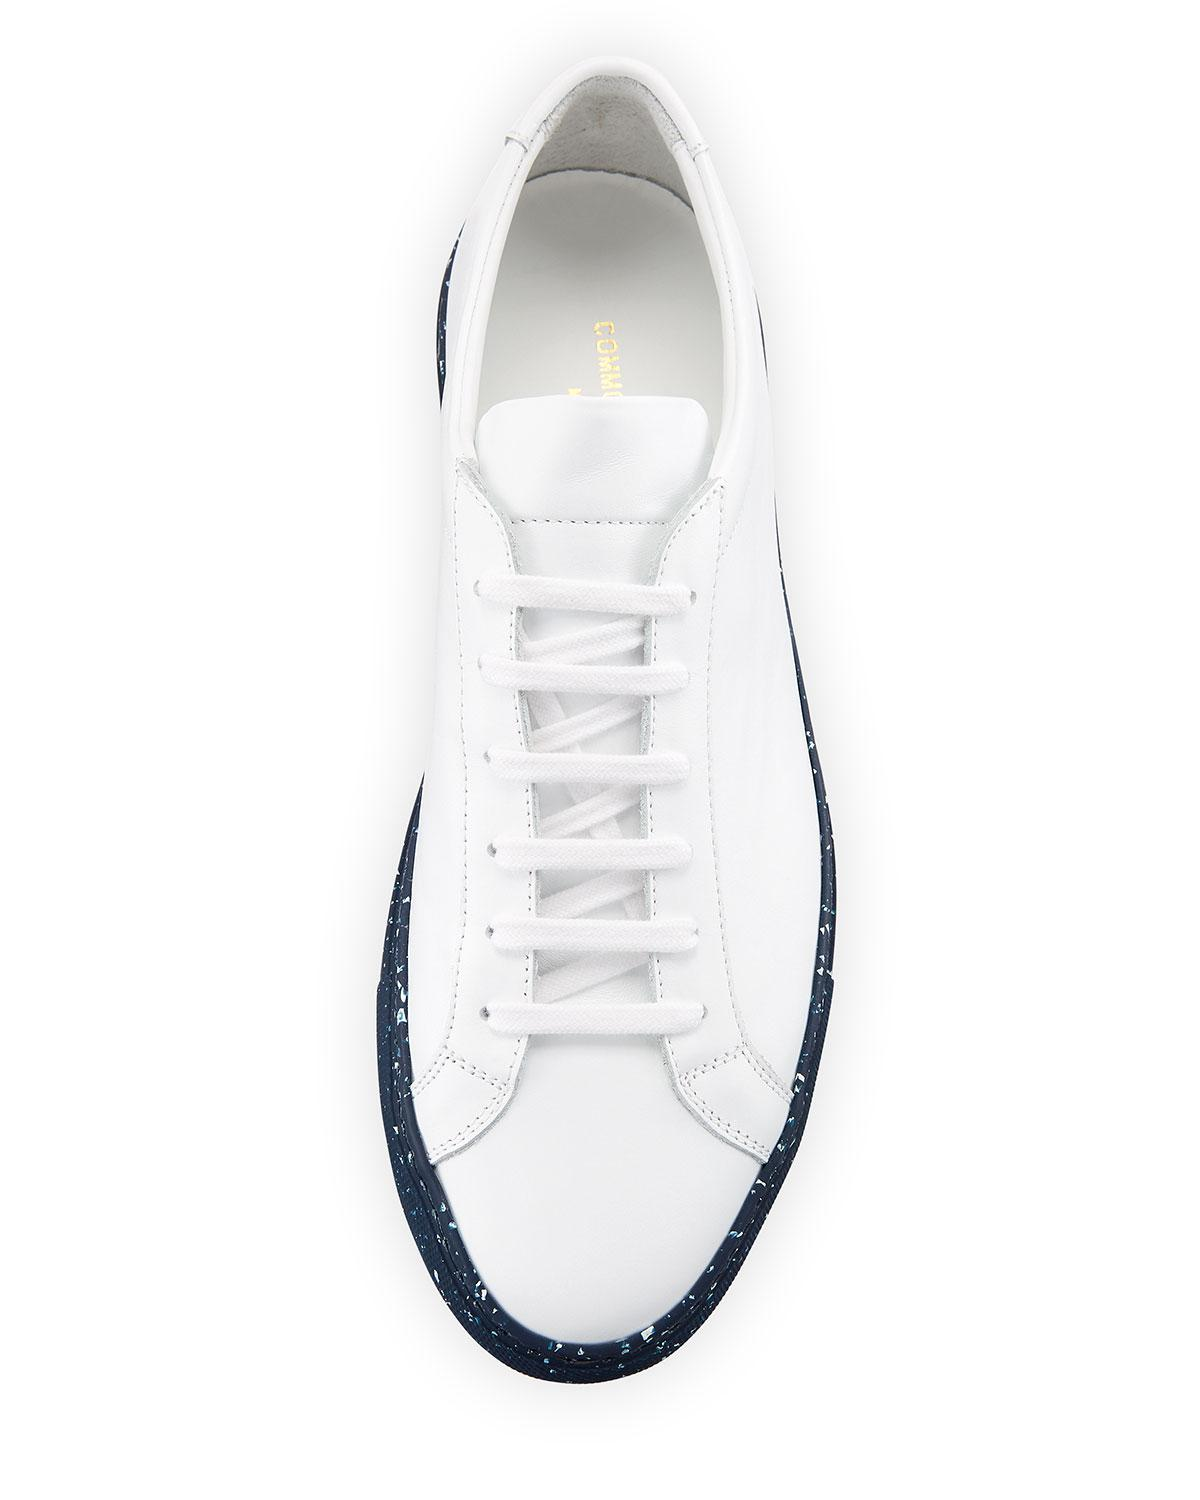 778db6fdcdf3 Lyst - Common Projects Men s Achilles Leather Low-top Sneakers With ...